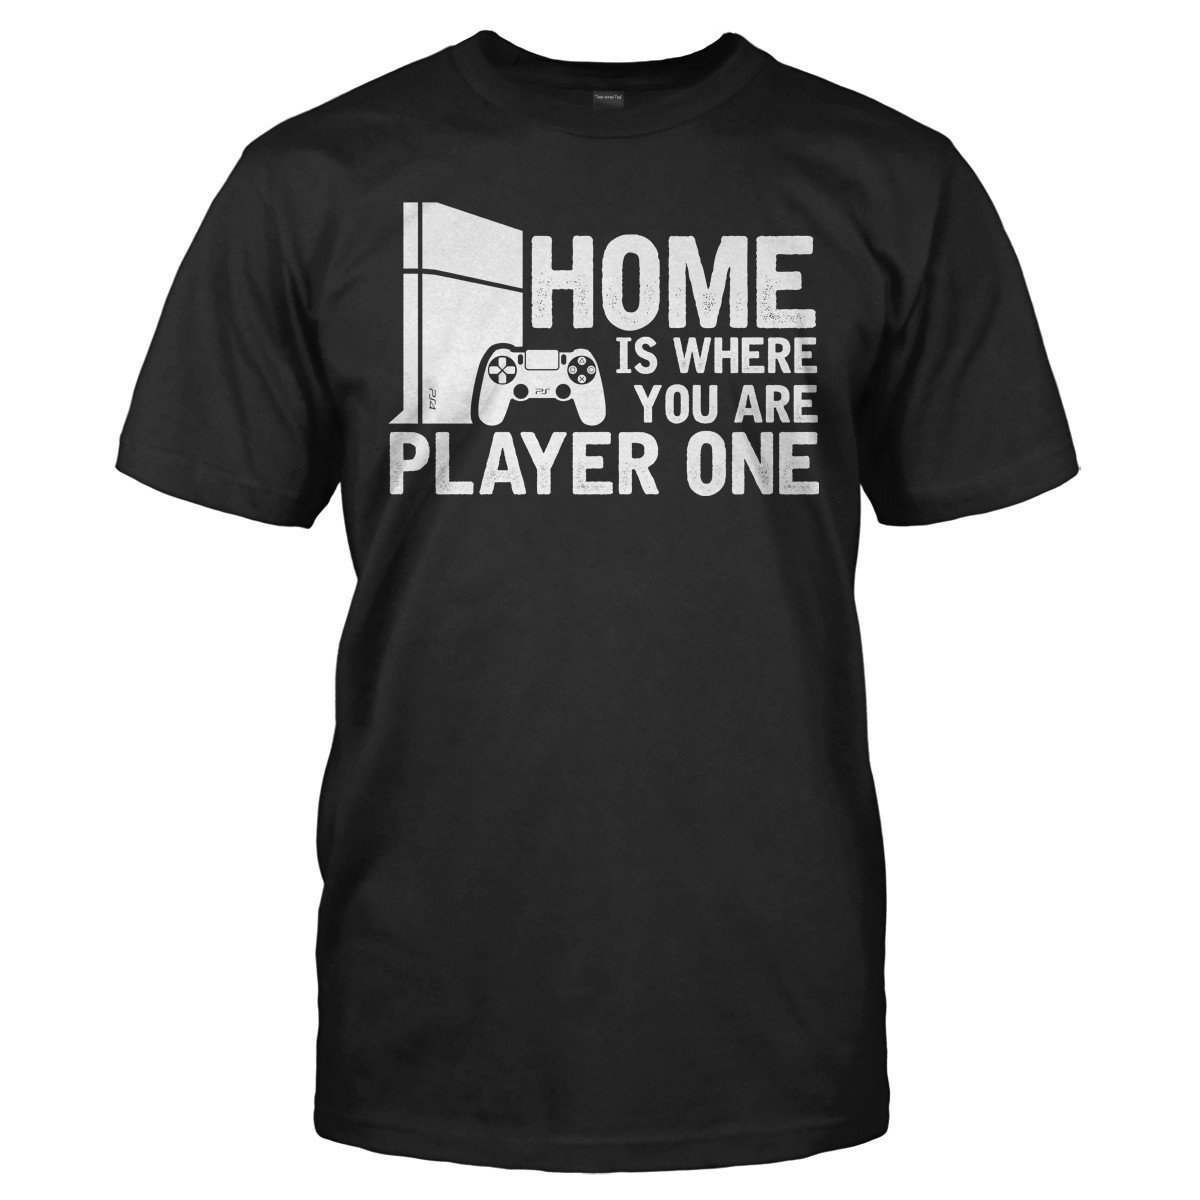 Home Is Where You Are Player One - T Shirt